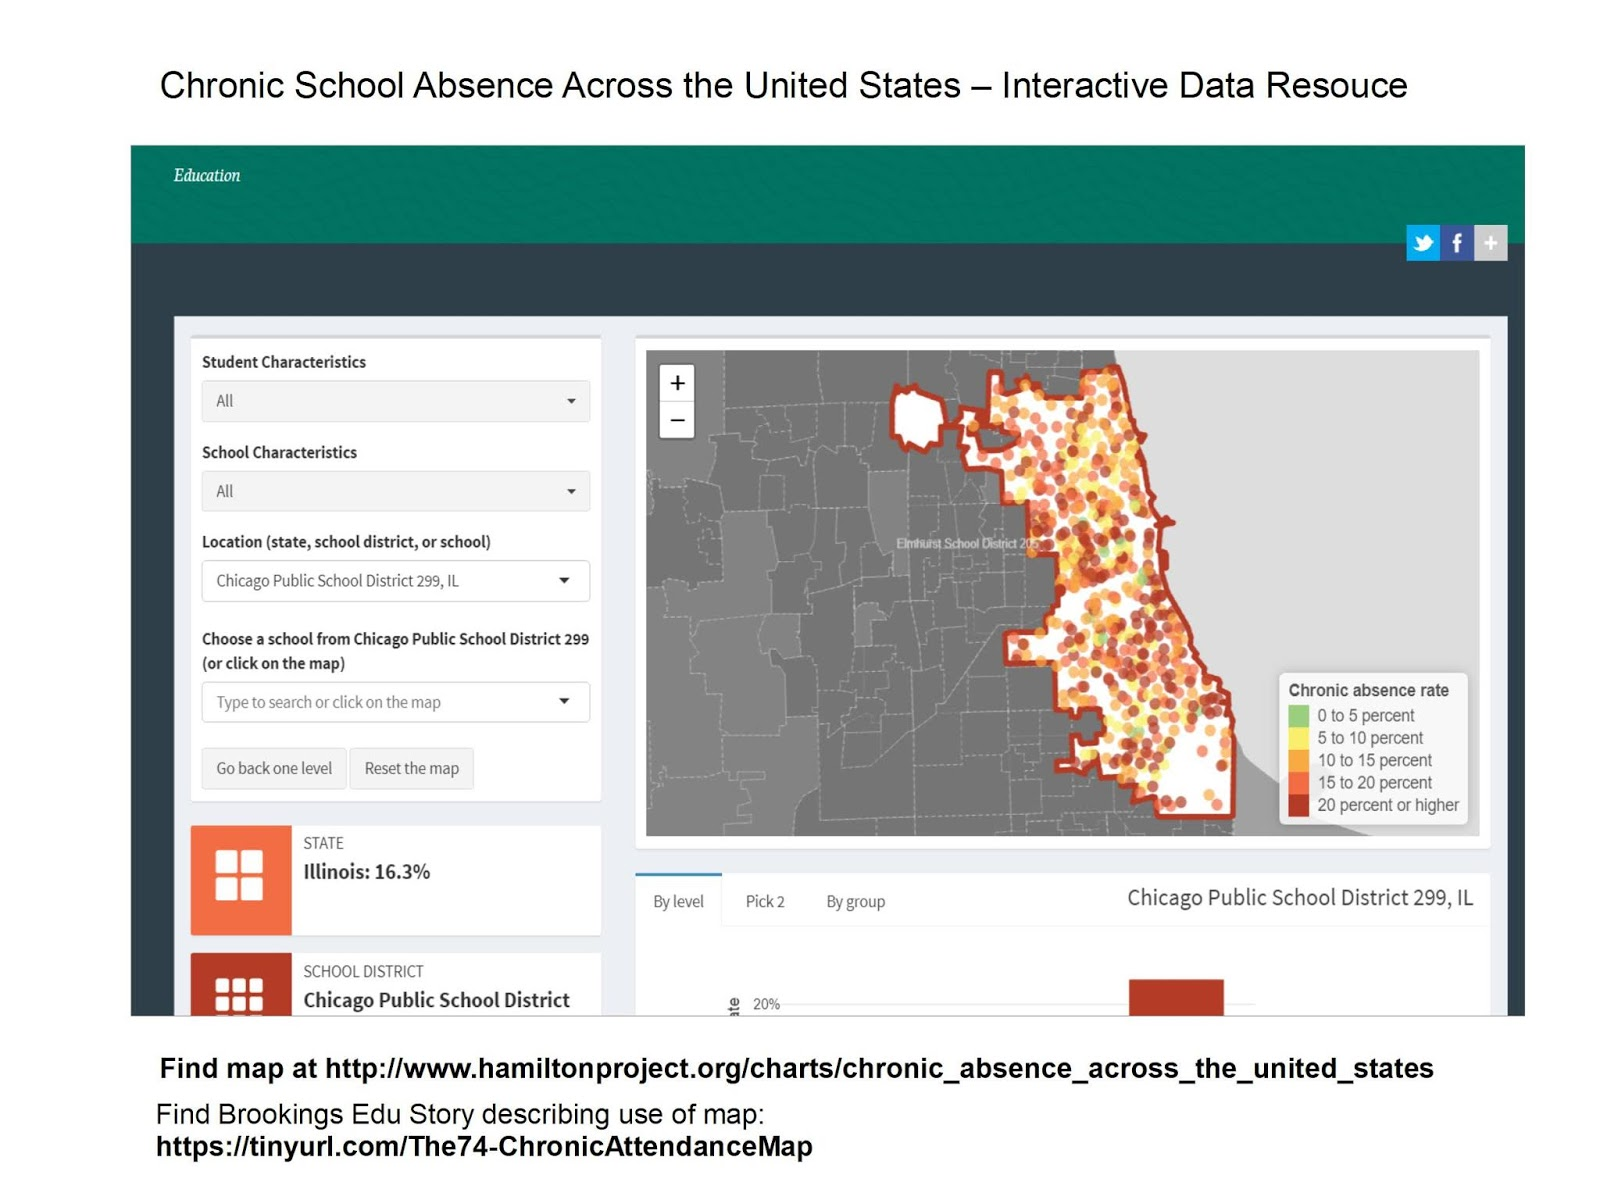 the map at the left is a screen shot of this page which host an interactive data map that shows chronic school absence rages for areas as small as a single